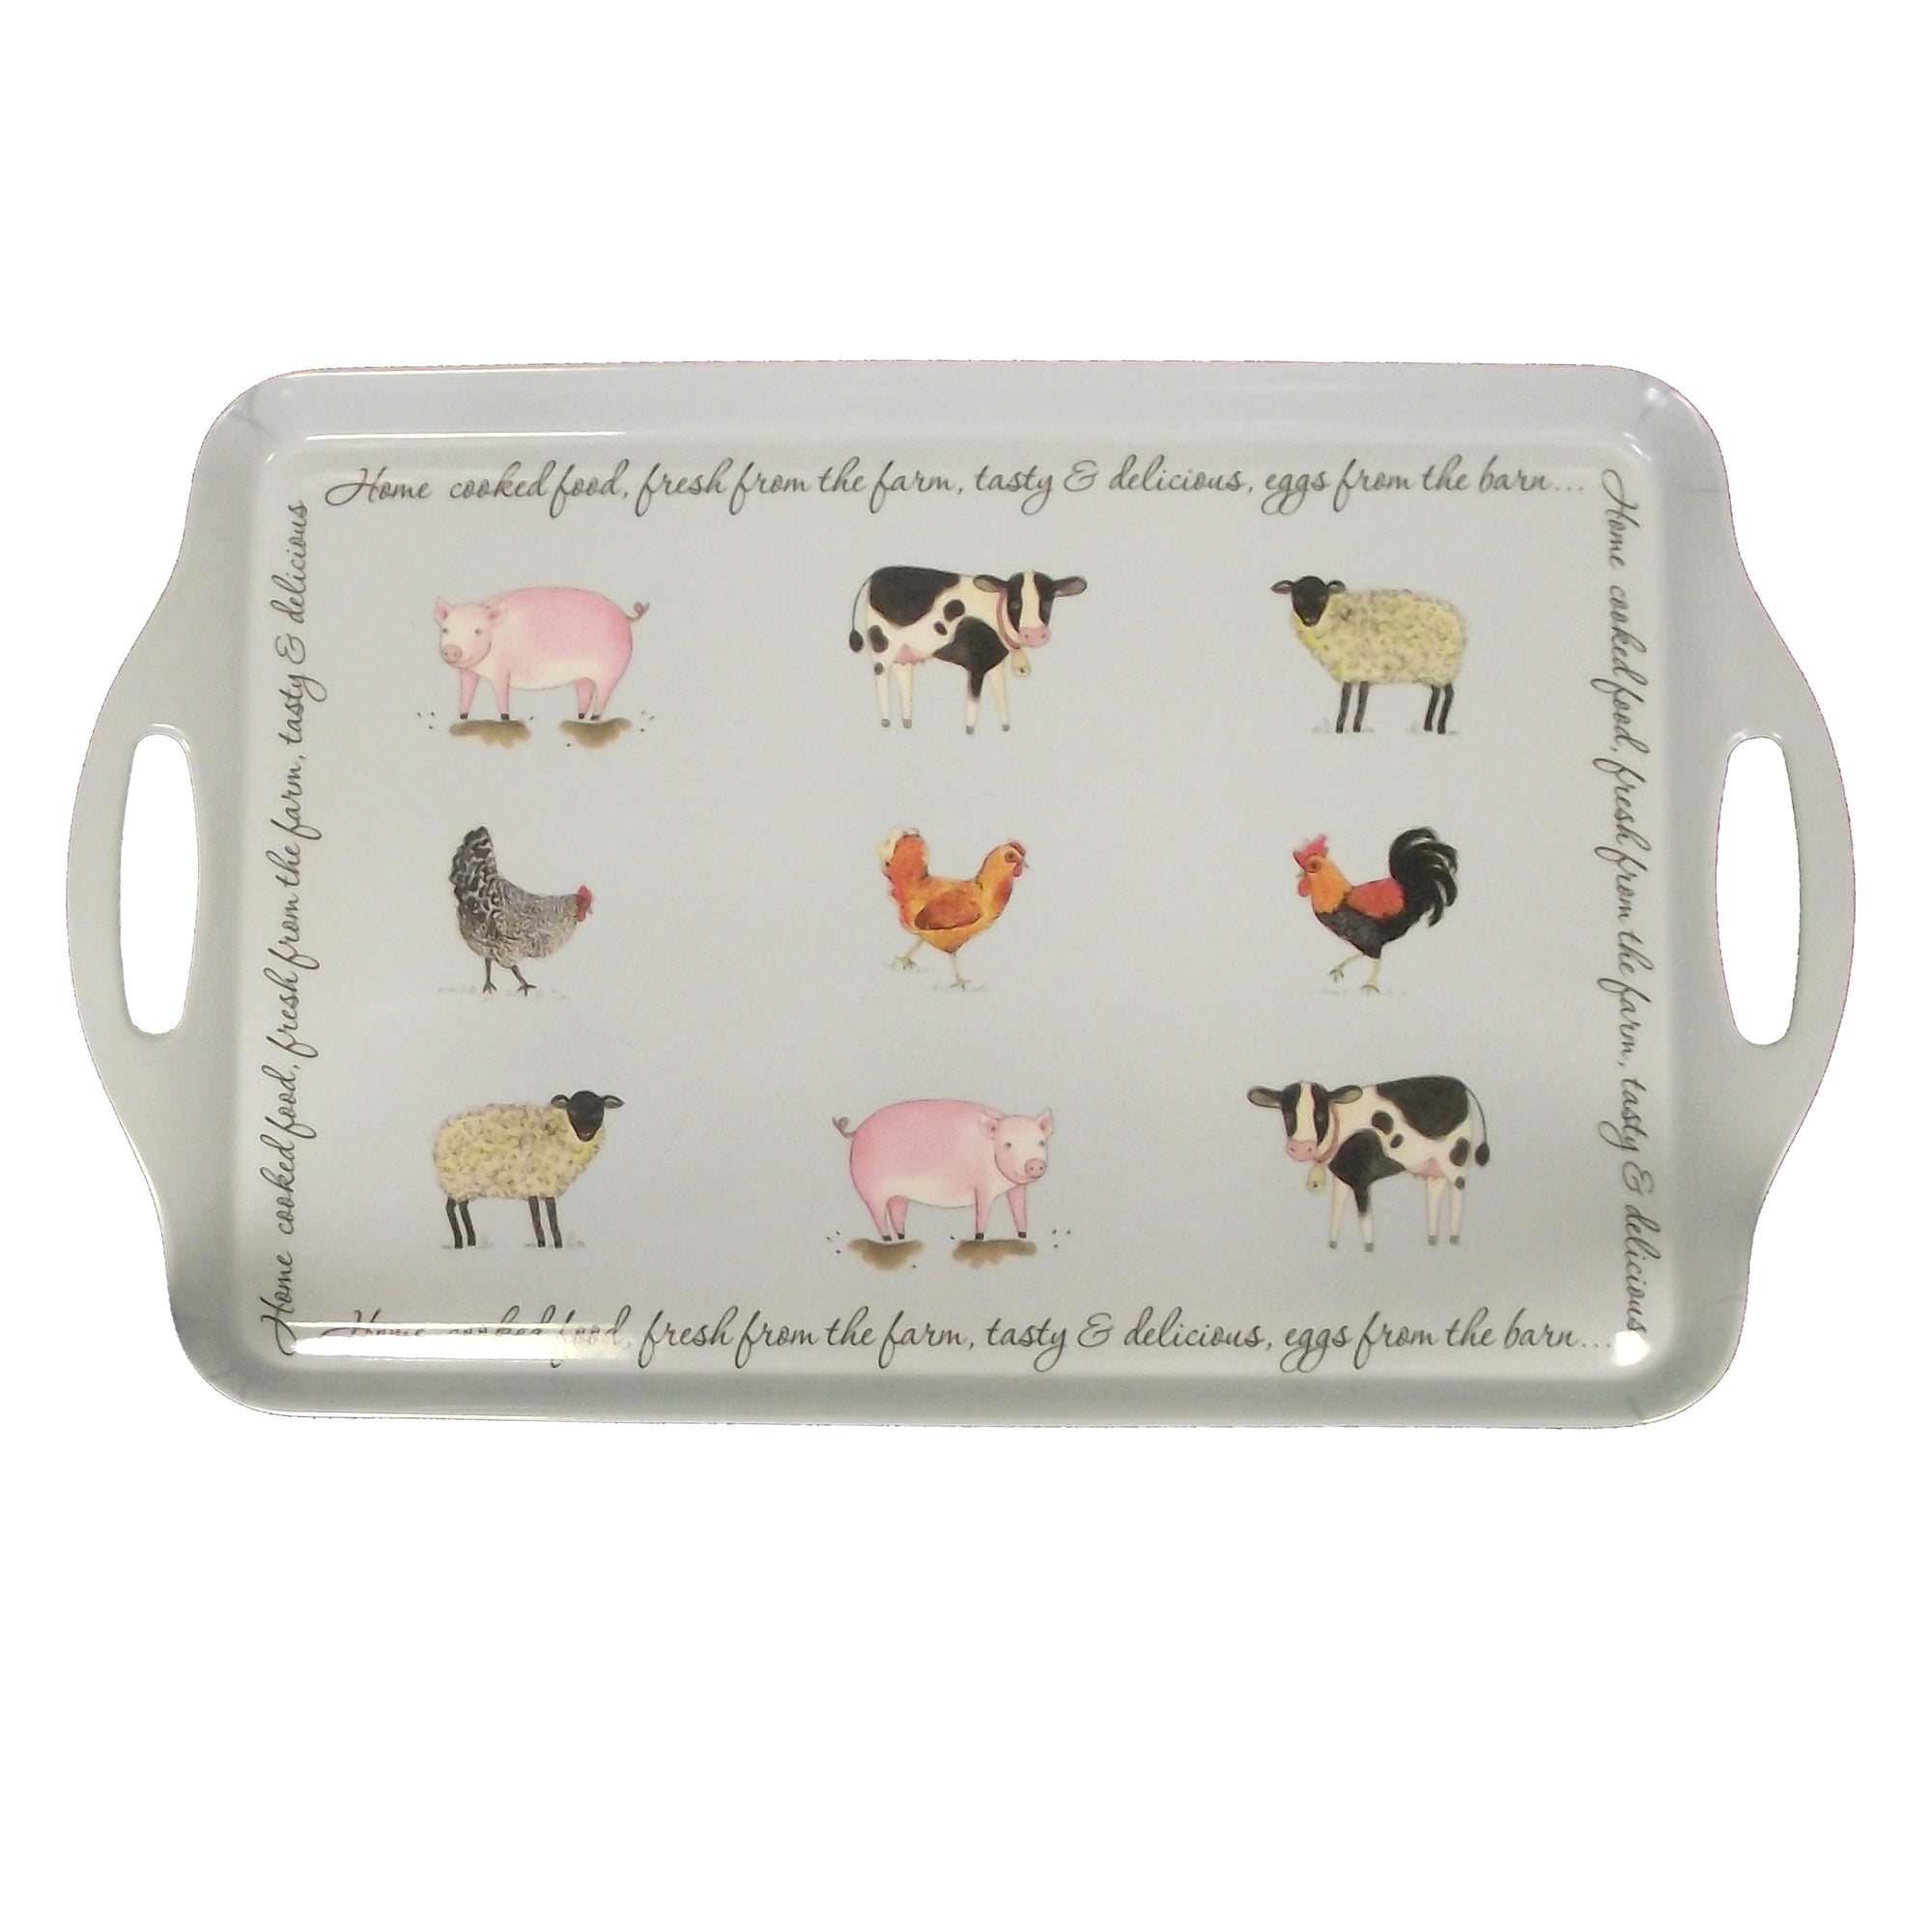 Bakewell Farm Collection Large Tray